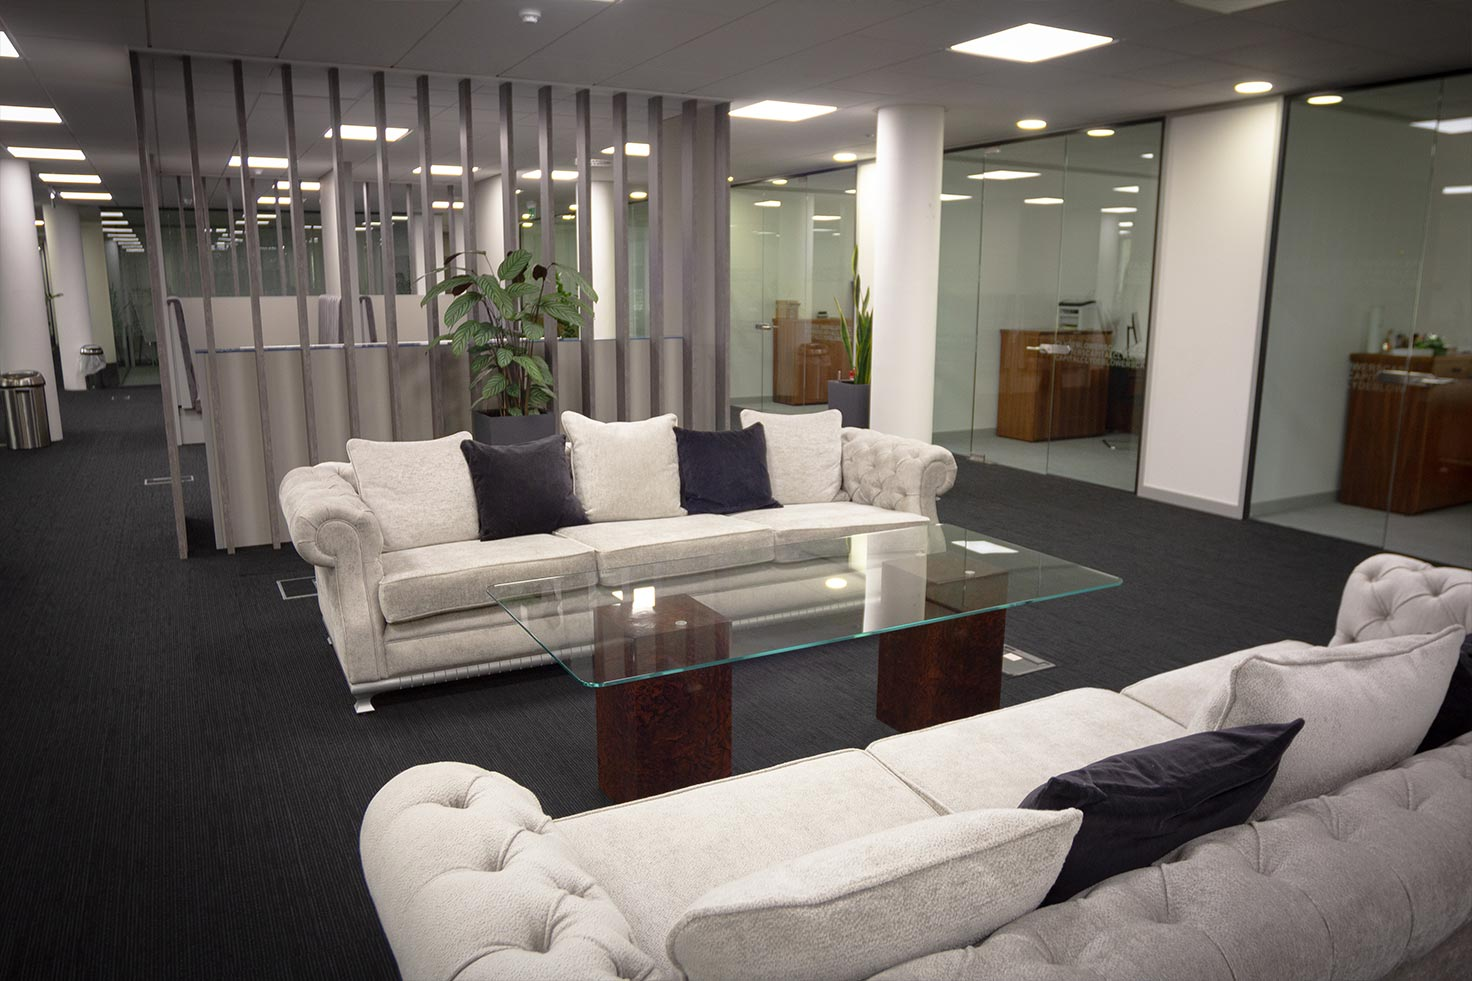 General seating area at Clyde Blowers Capital Ltd - Designed and Installed by Jack Hyams